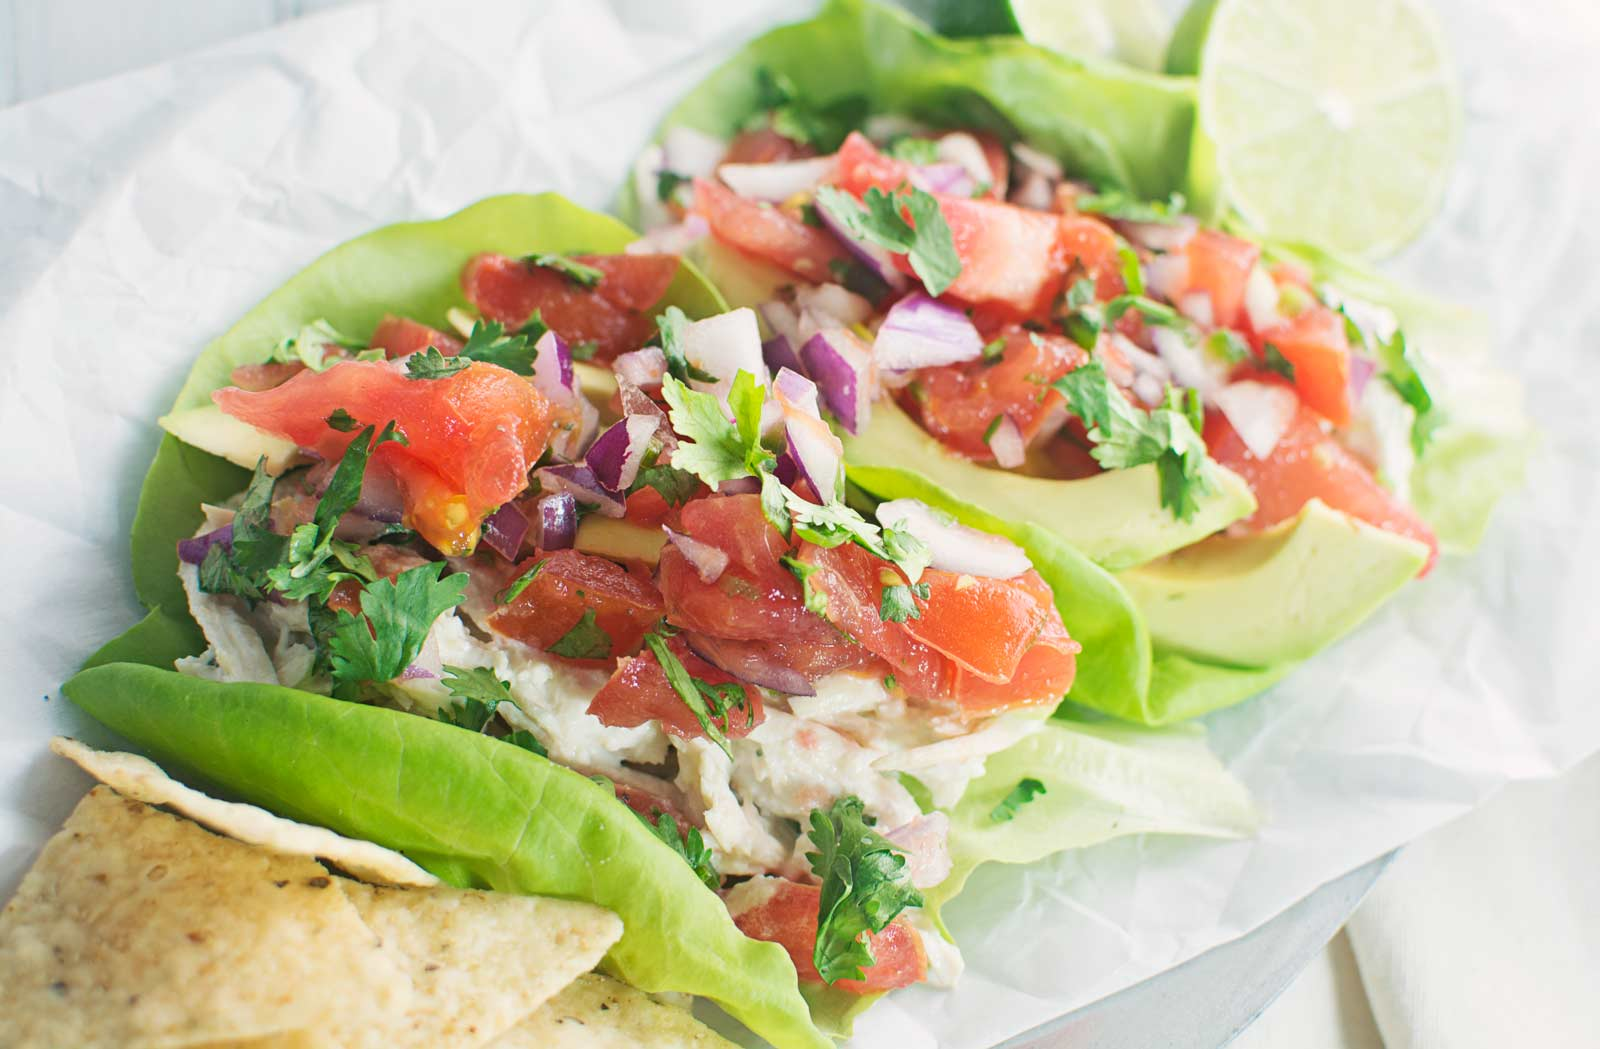 Mexican Chicken Salad with homemade Pico de Gallo served over lettuce.